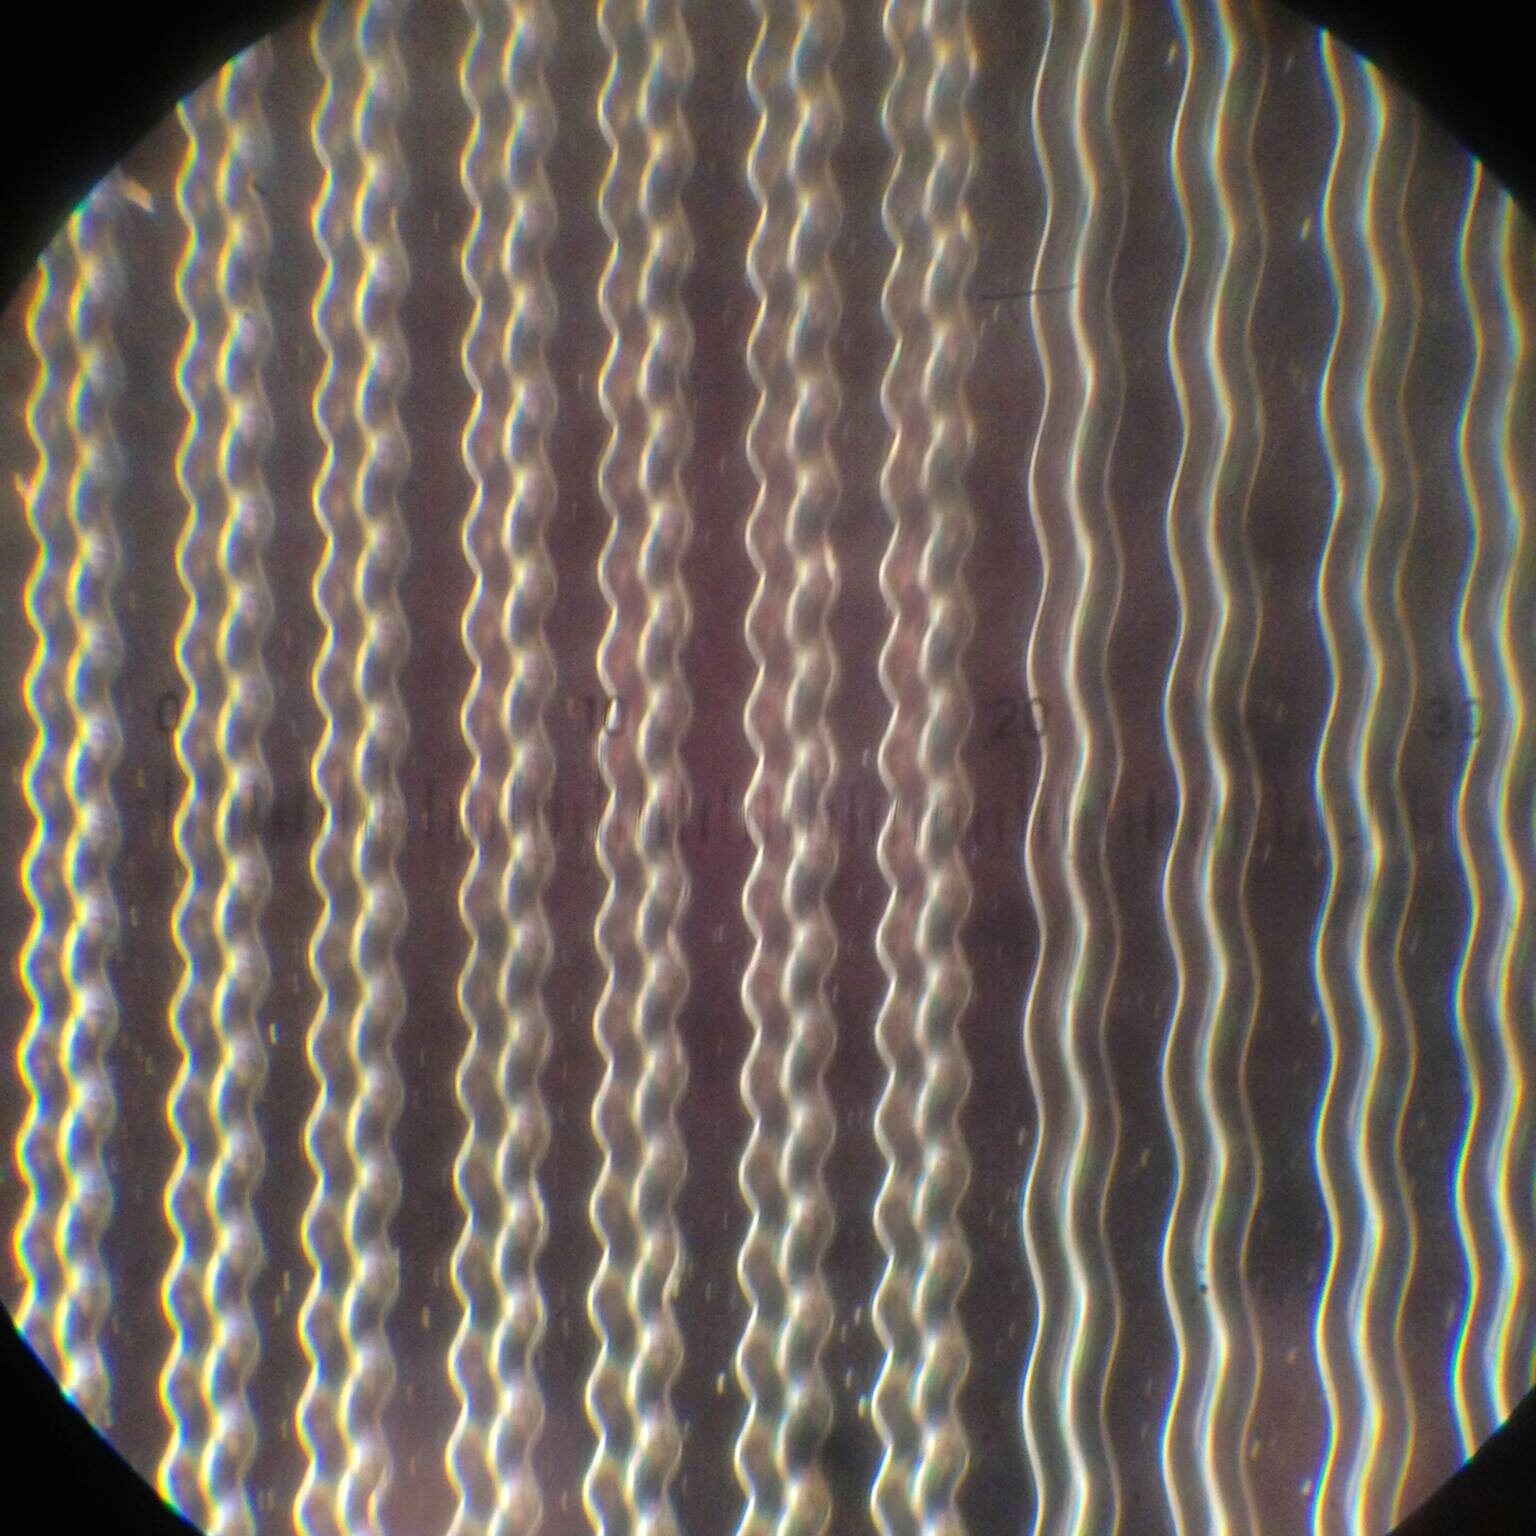 vinyl production grooves under microscope